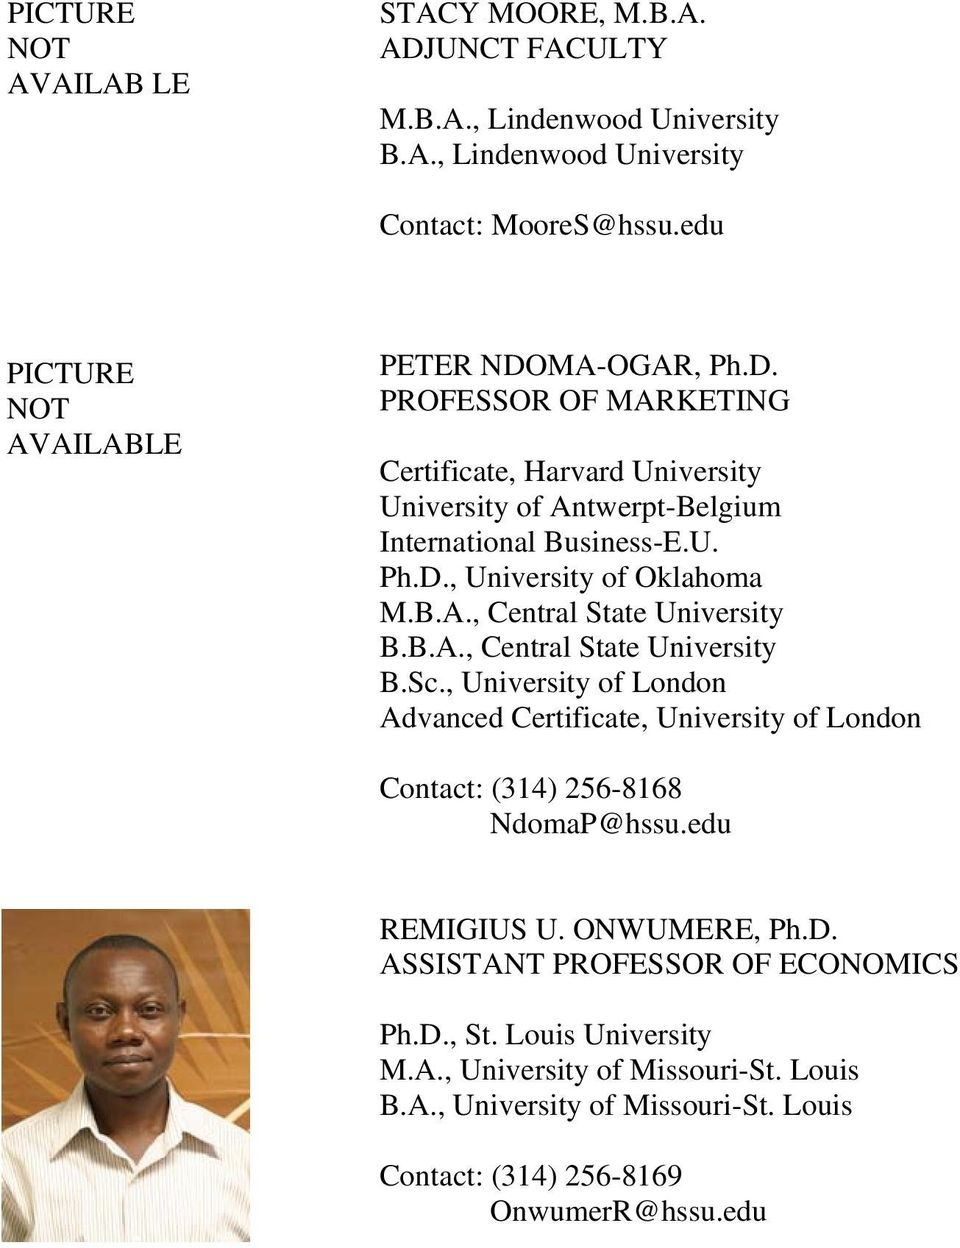 B.A., Central State University B.Sc., University of London Advanced Certificate, University of London Contact: (314) 256-8168 NdomaP@hssu.edu REMIGIUS U. ONWUMERE, Ph.